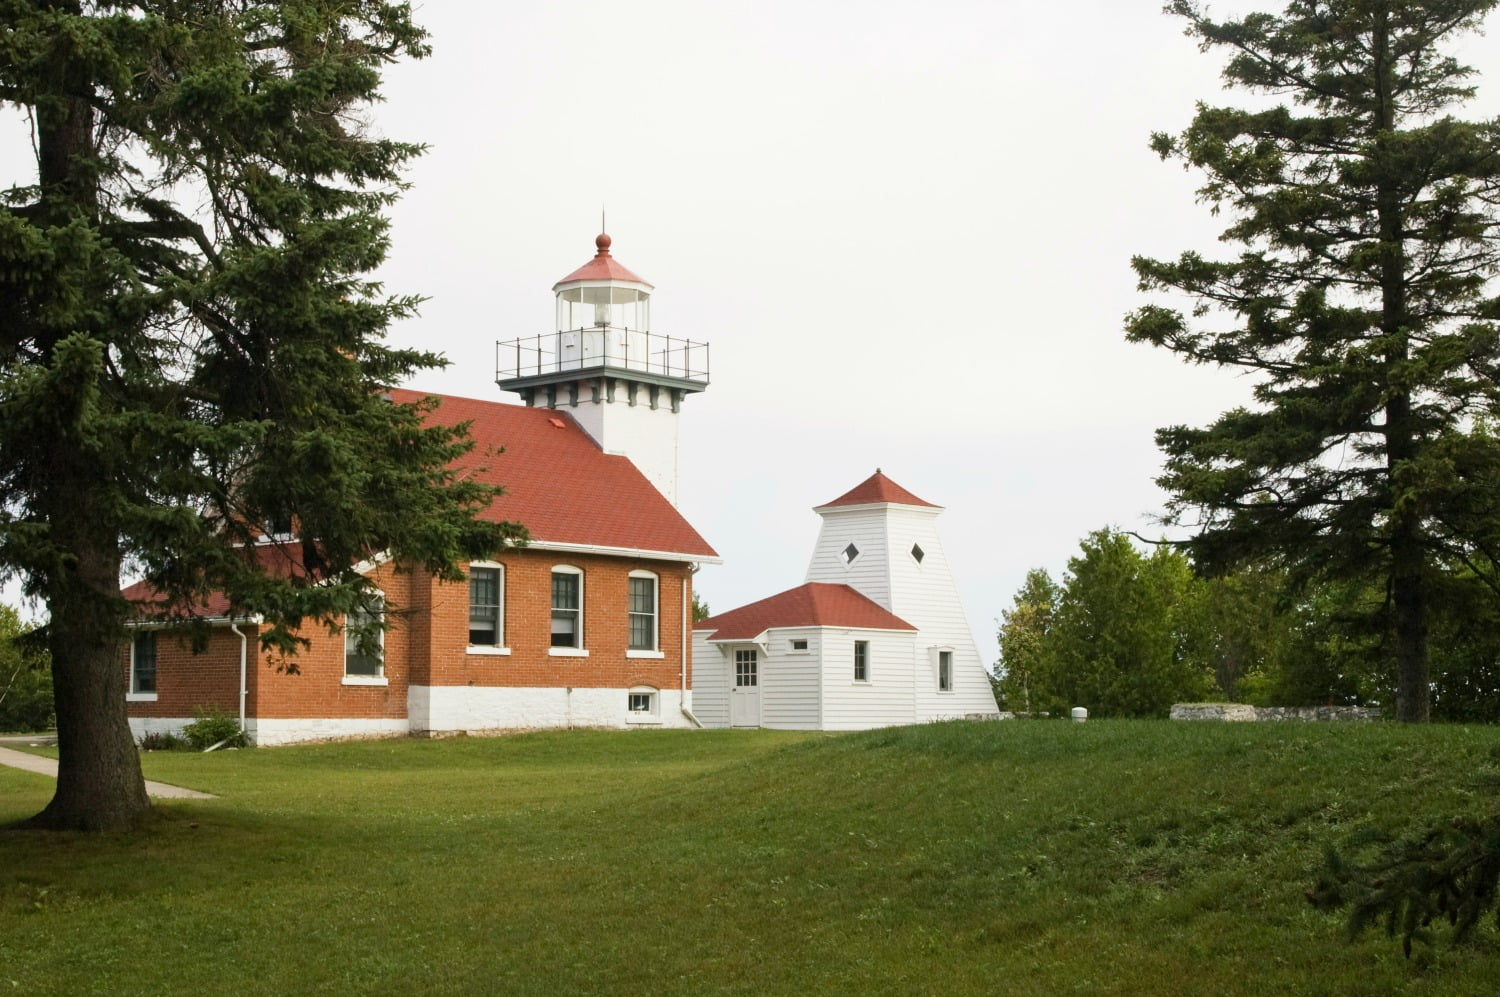 What You Need To Know About The Sherwood Point Lighthouse